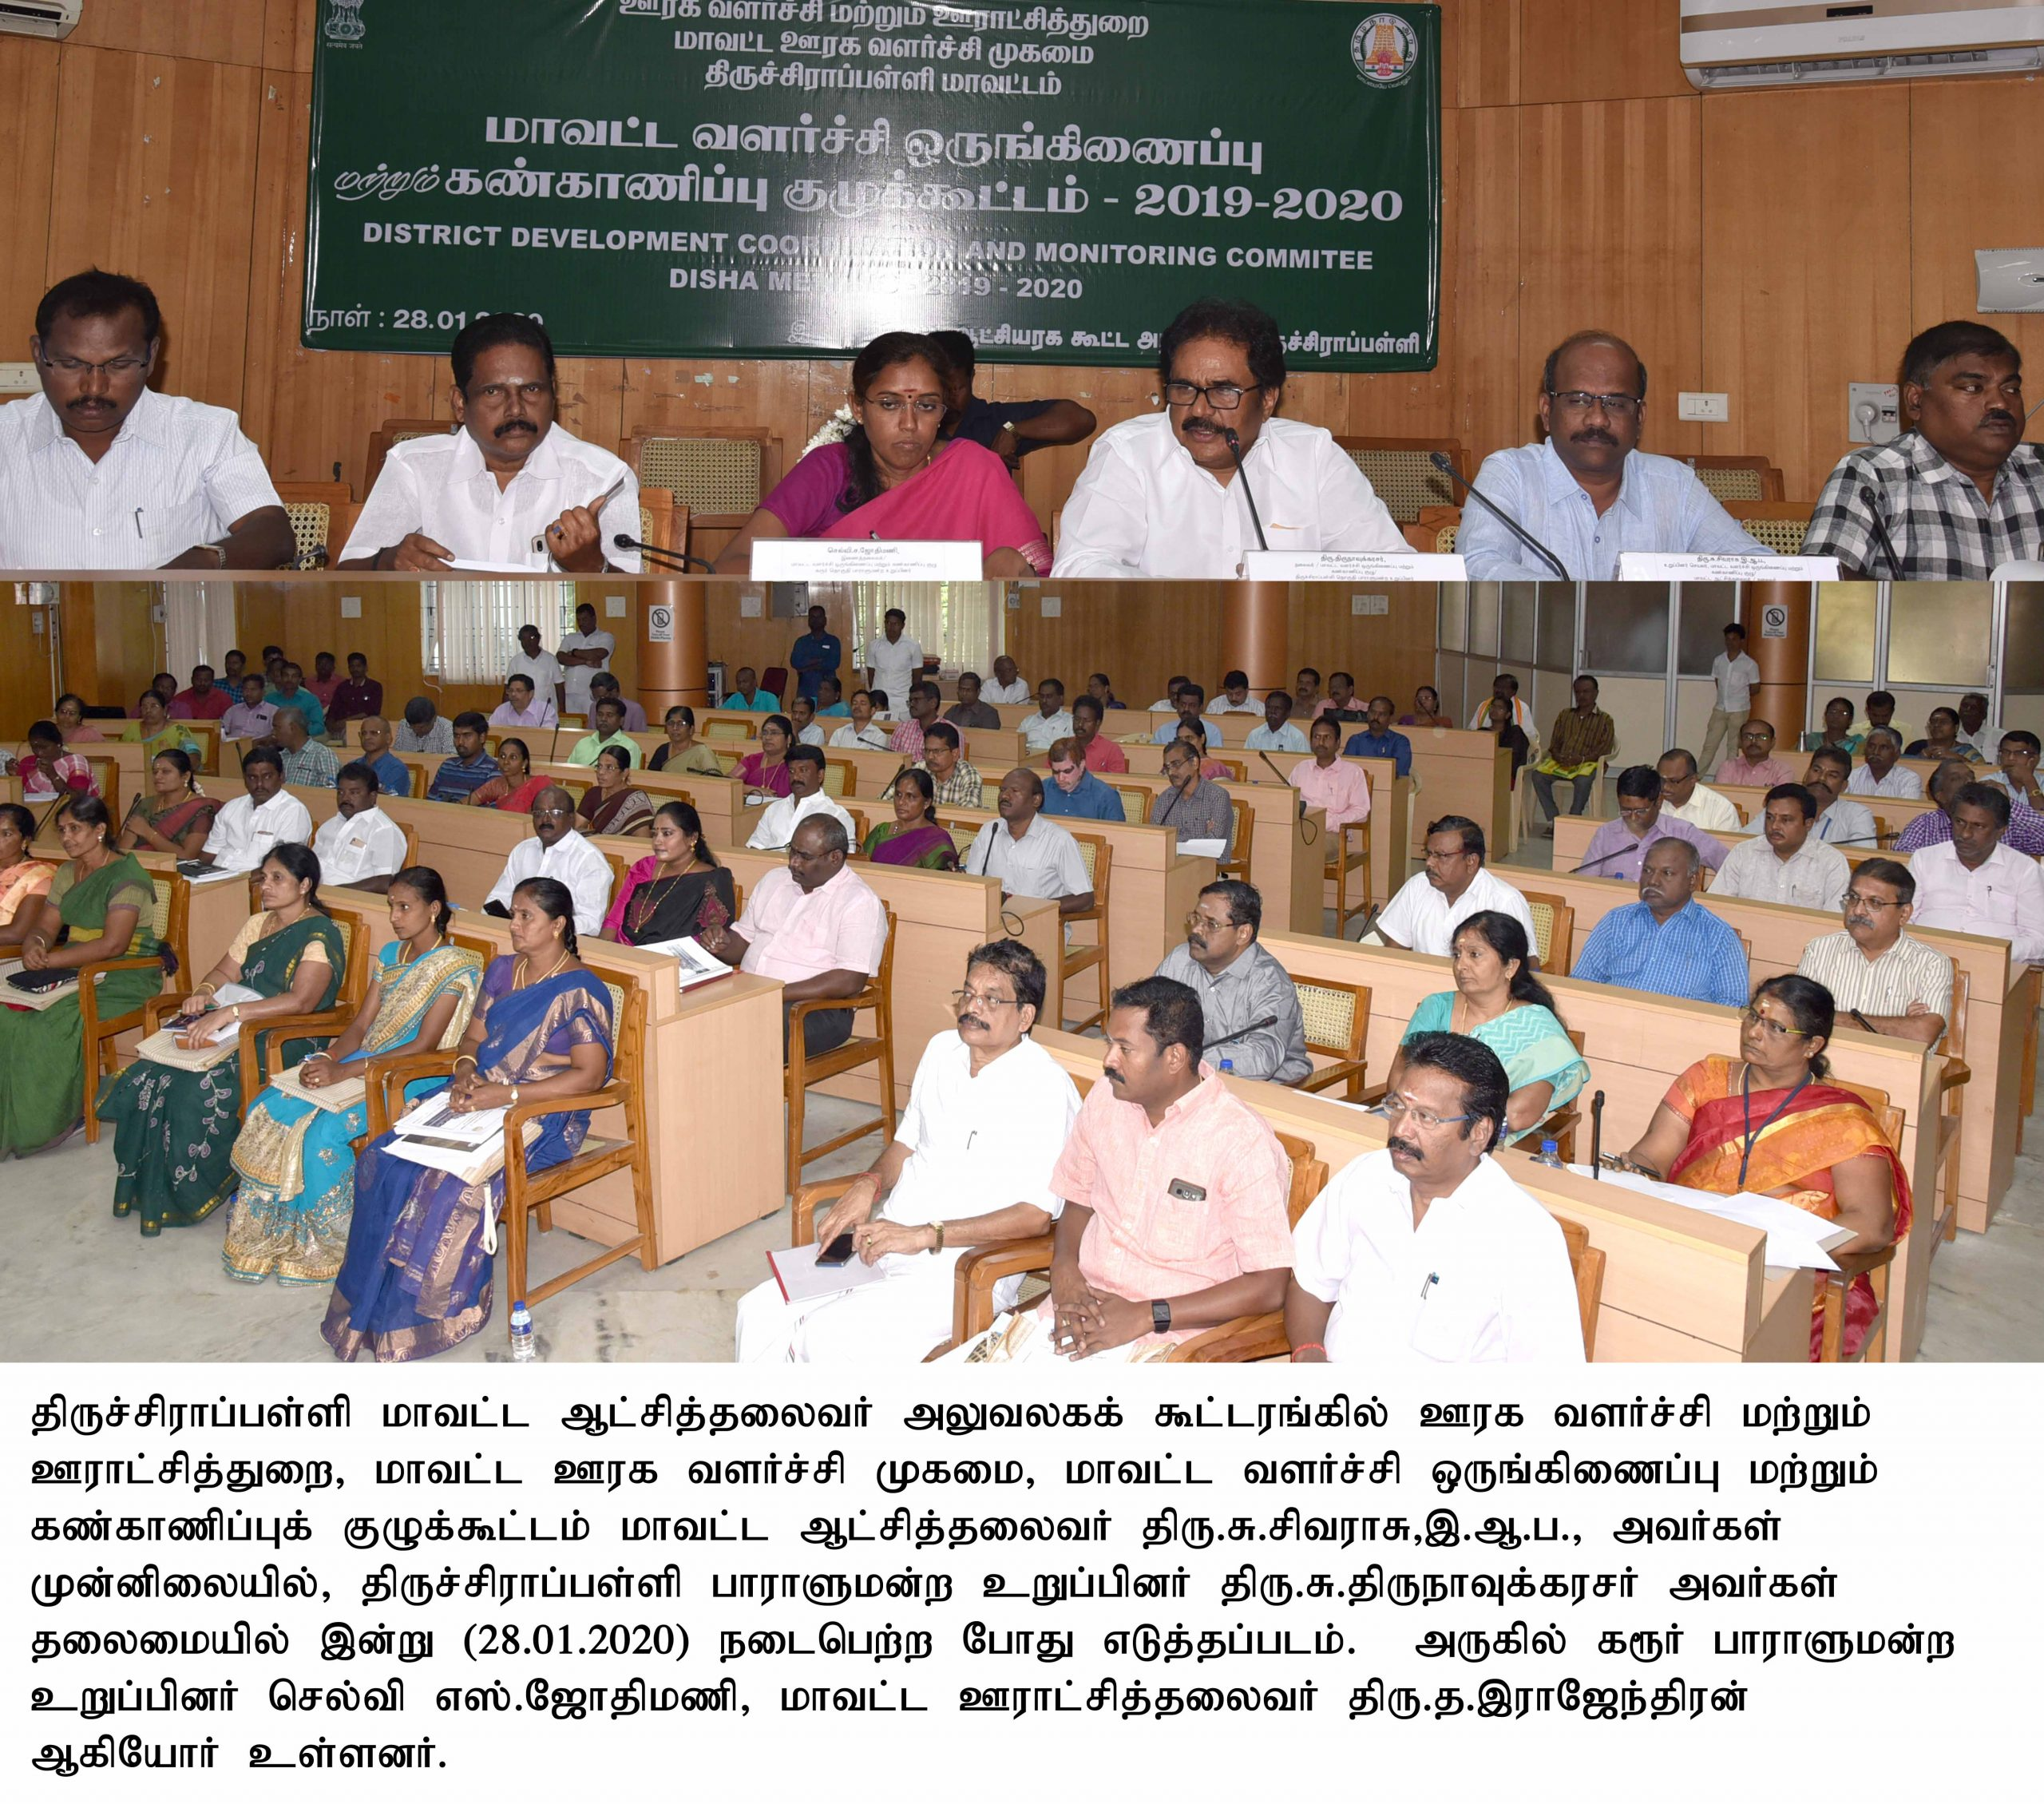 District Development Coordination and Monitoring Committee Meeting on 28-01-2020